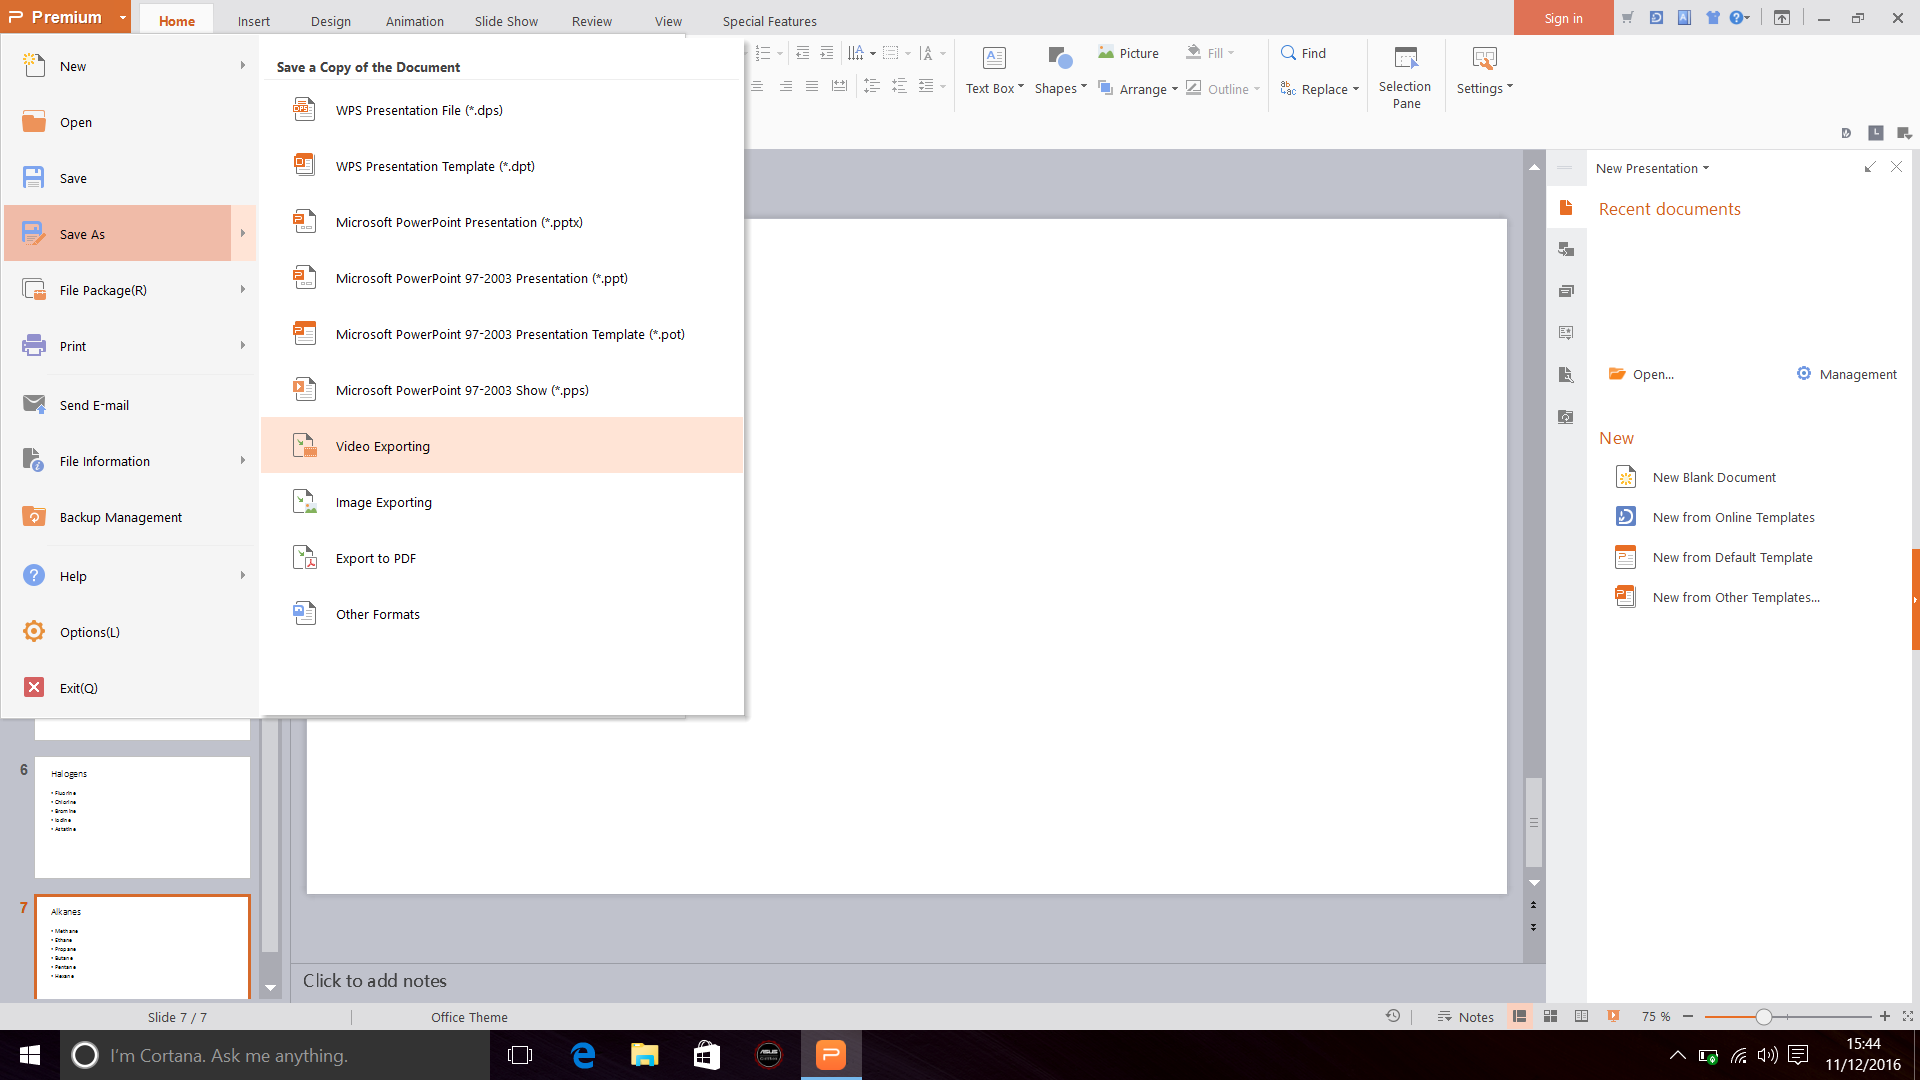 Screenshot of Selecting Save As in WPS Office 2016 Presentation